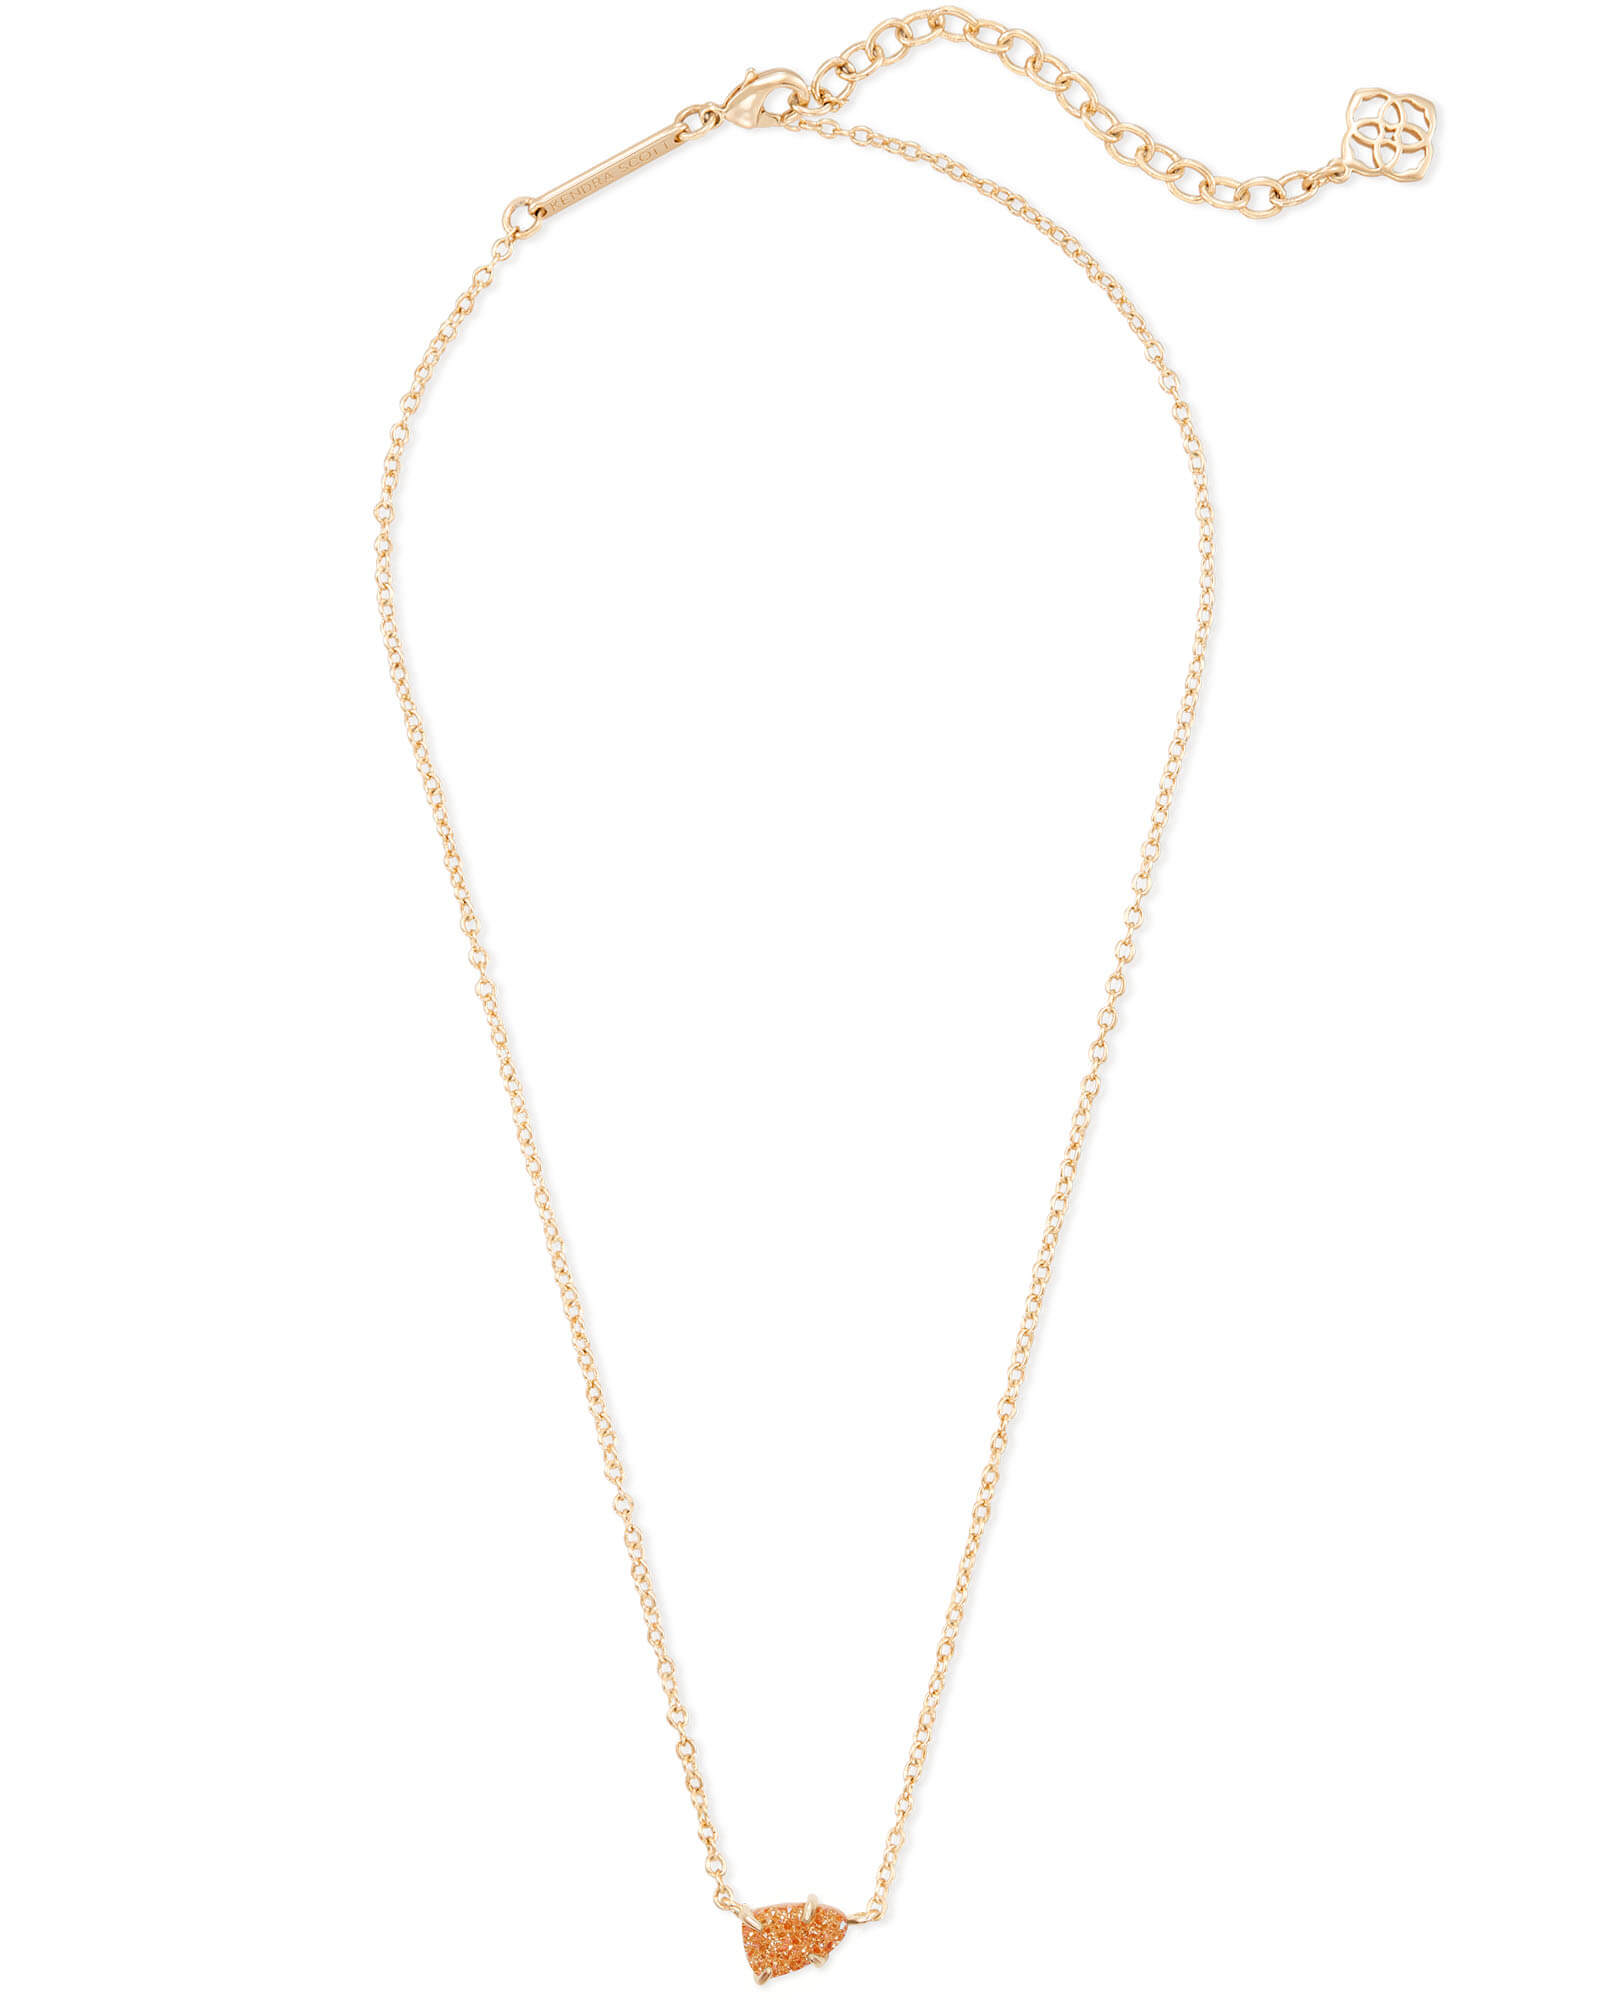 Helga Gold Pendant Necklace in Goldstone Drusy